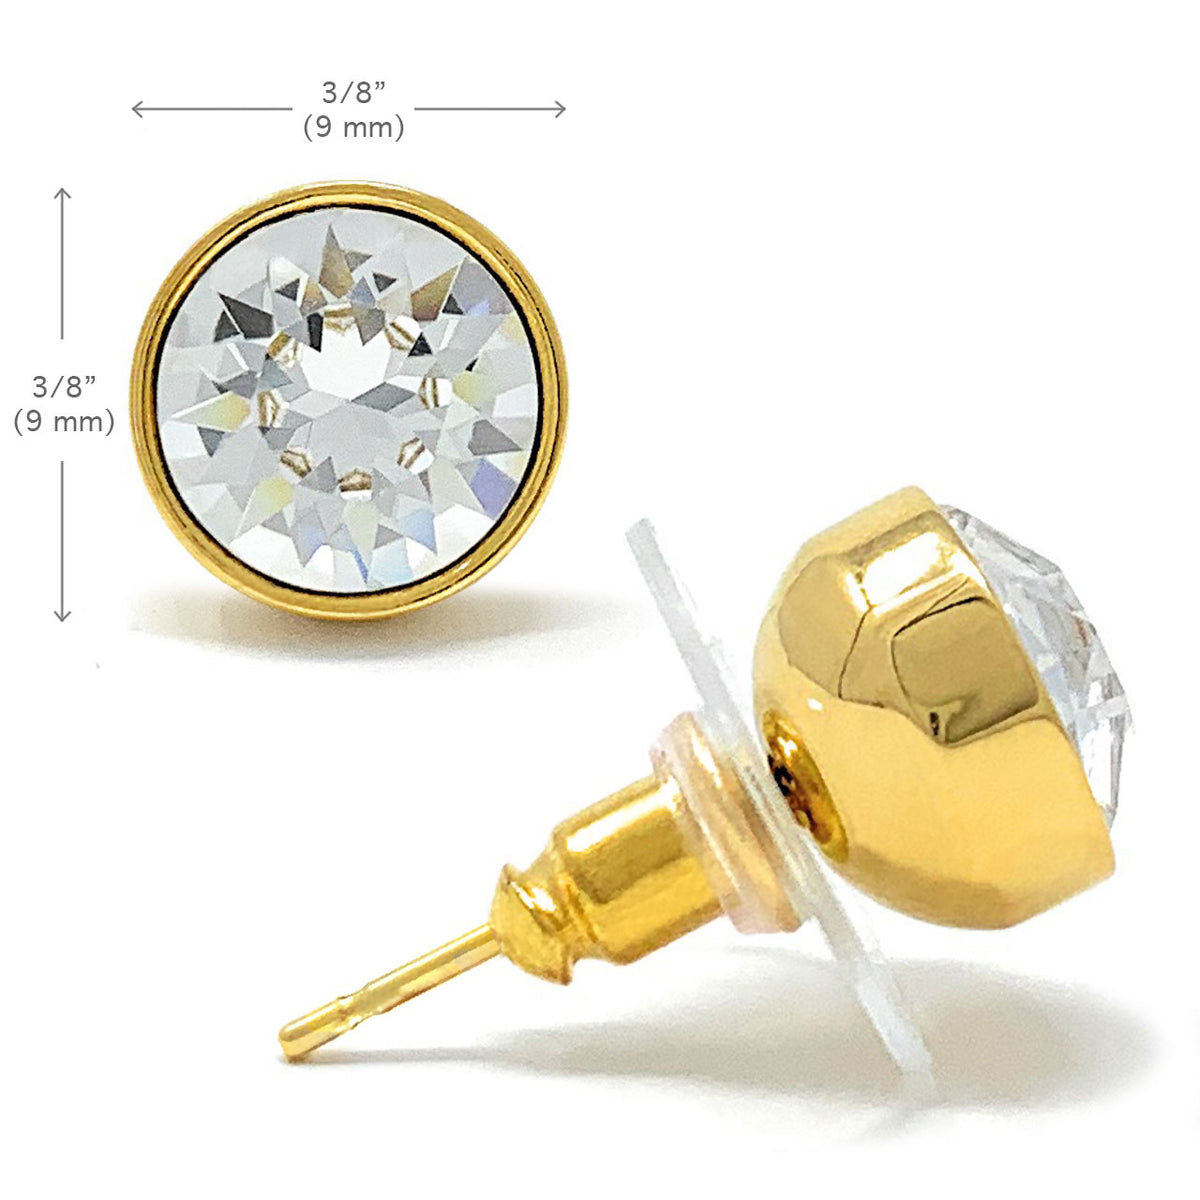 Harley Stud Earrings with White Clear Round Crystals from Swarovski Gold Plated - Ed Heart